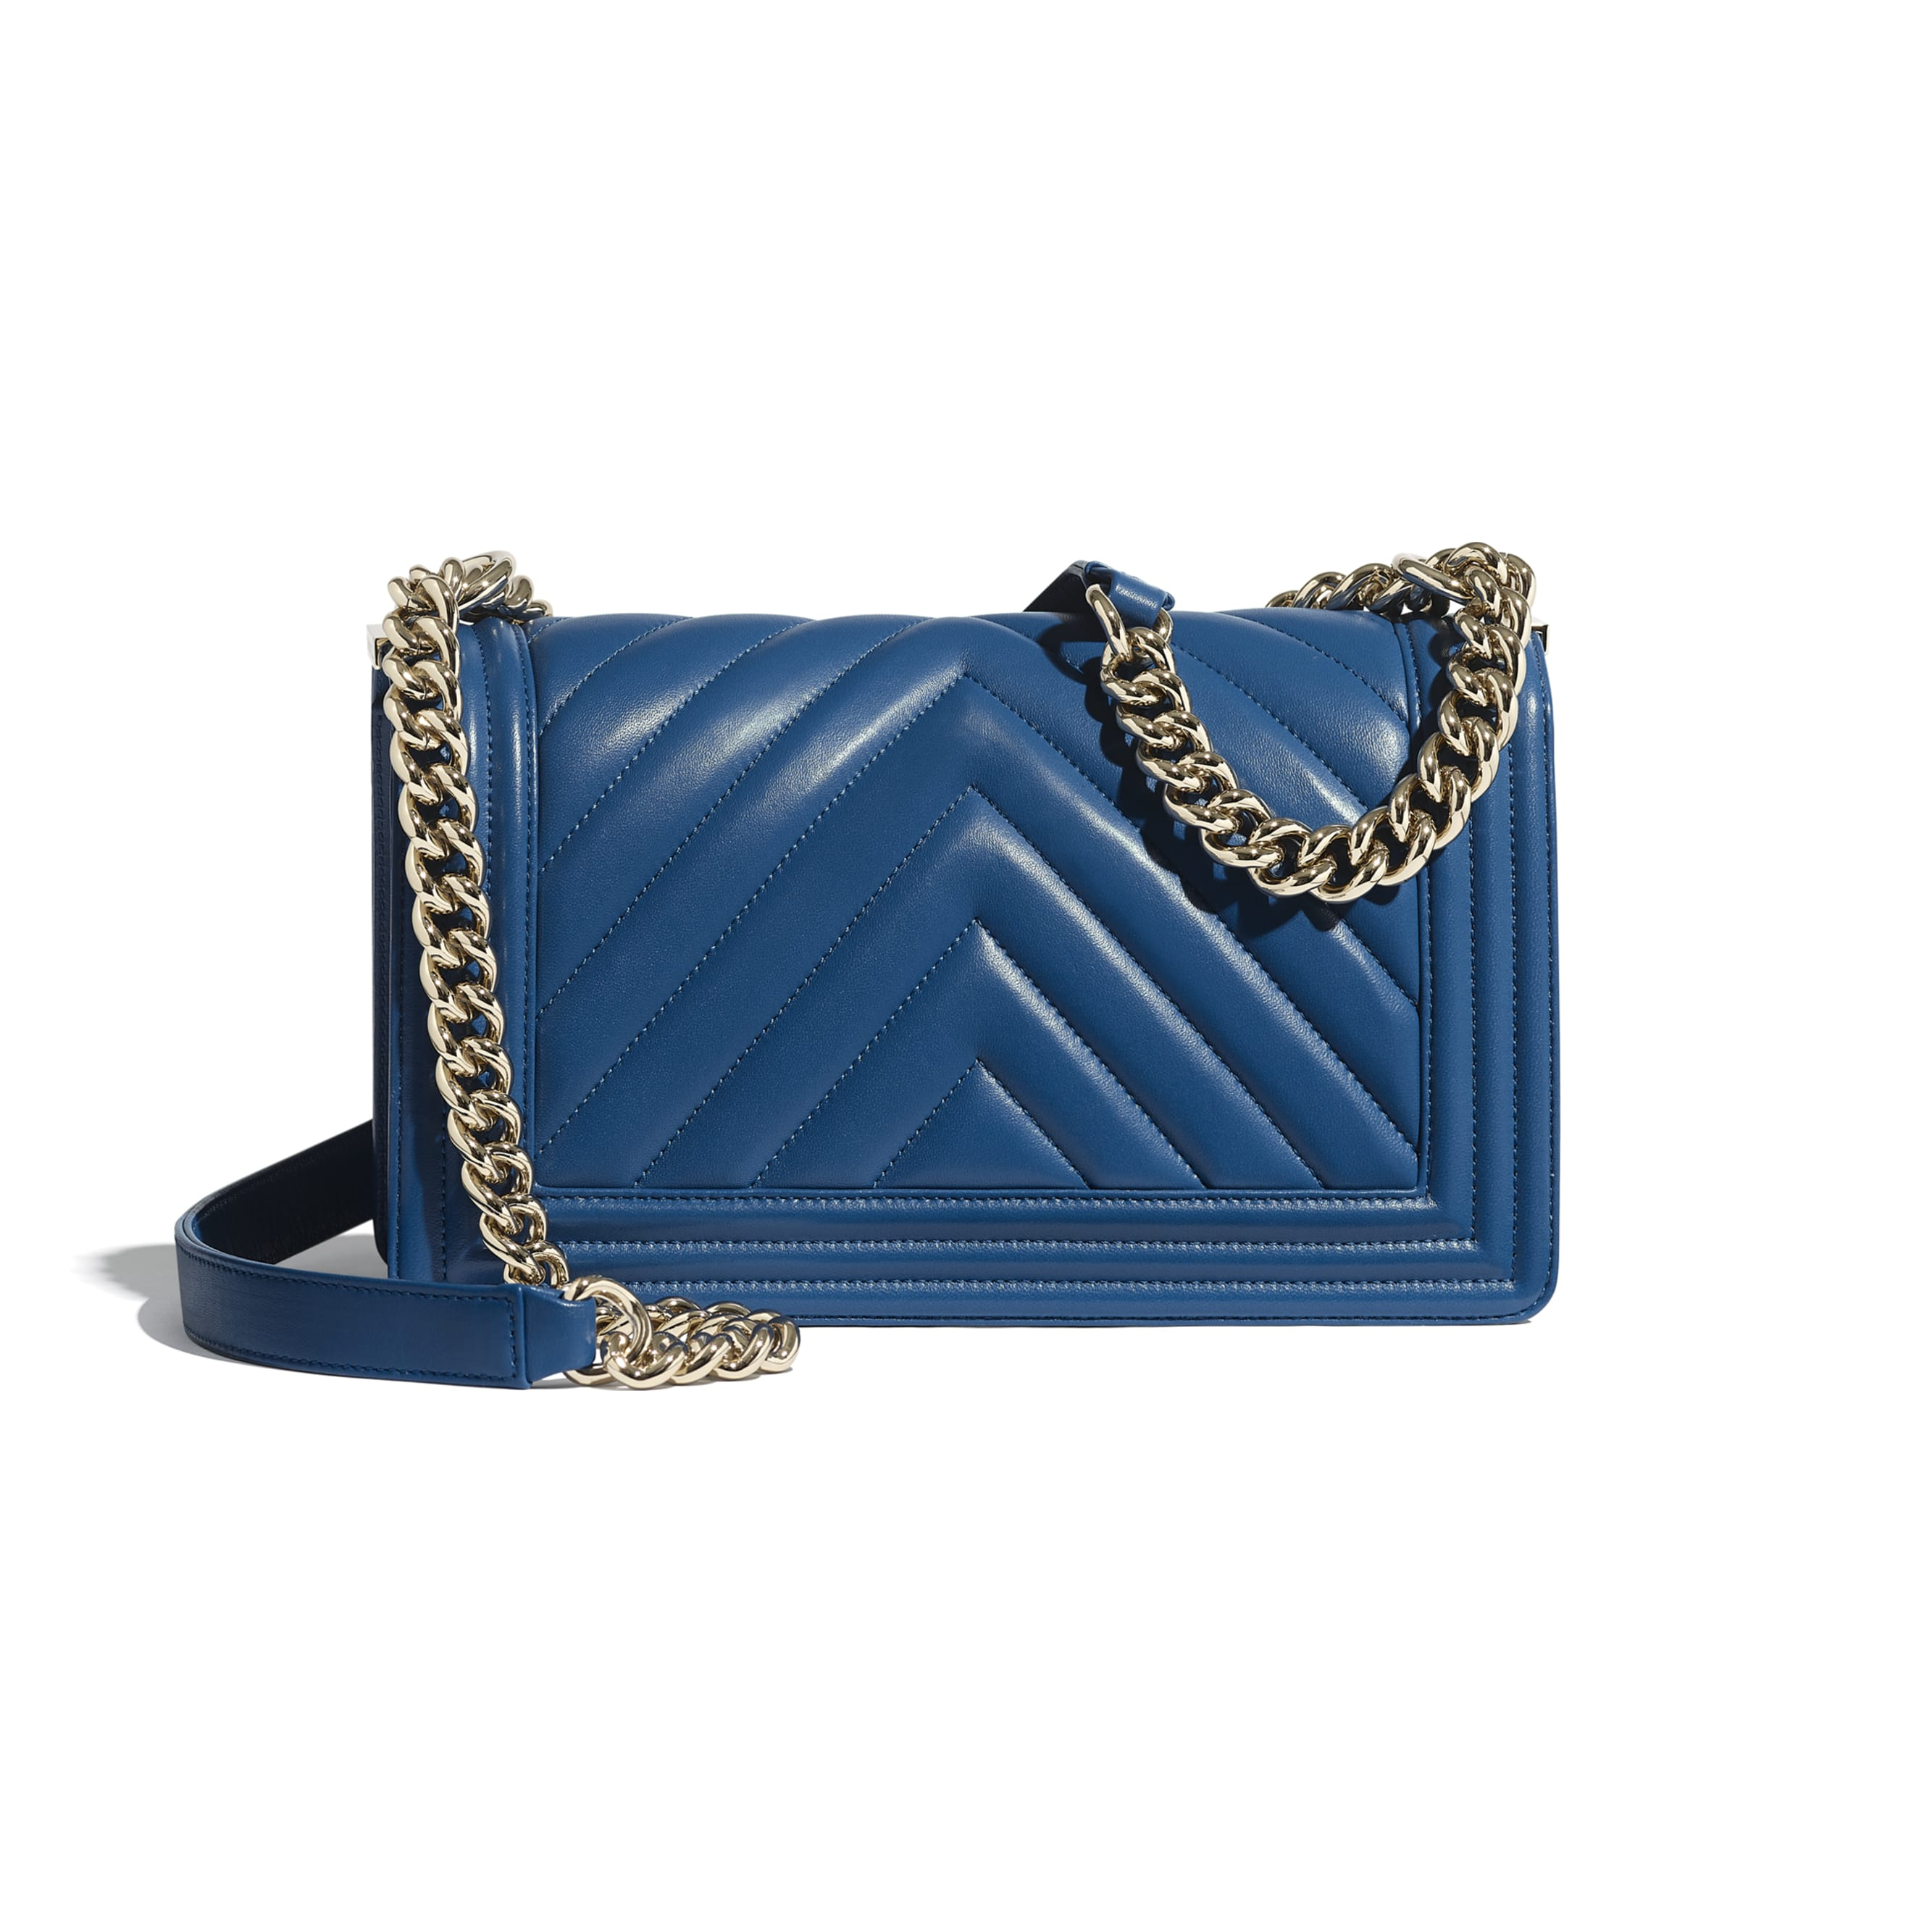 BOY CHANEL Handbag - Dark Blue - Calfskin & Gold-Tone Metal - Alternative view - see standard sized version